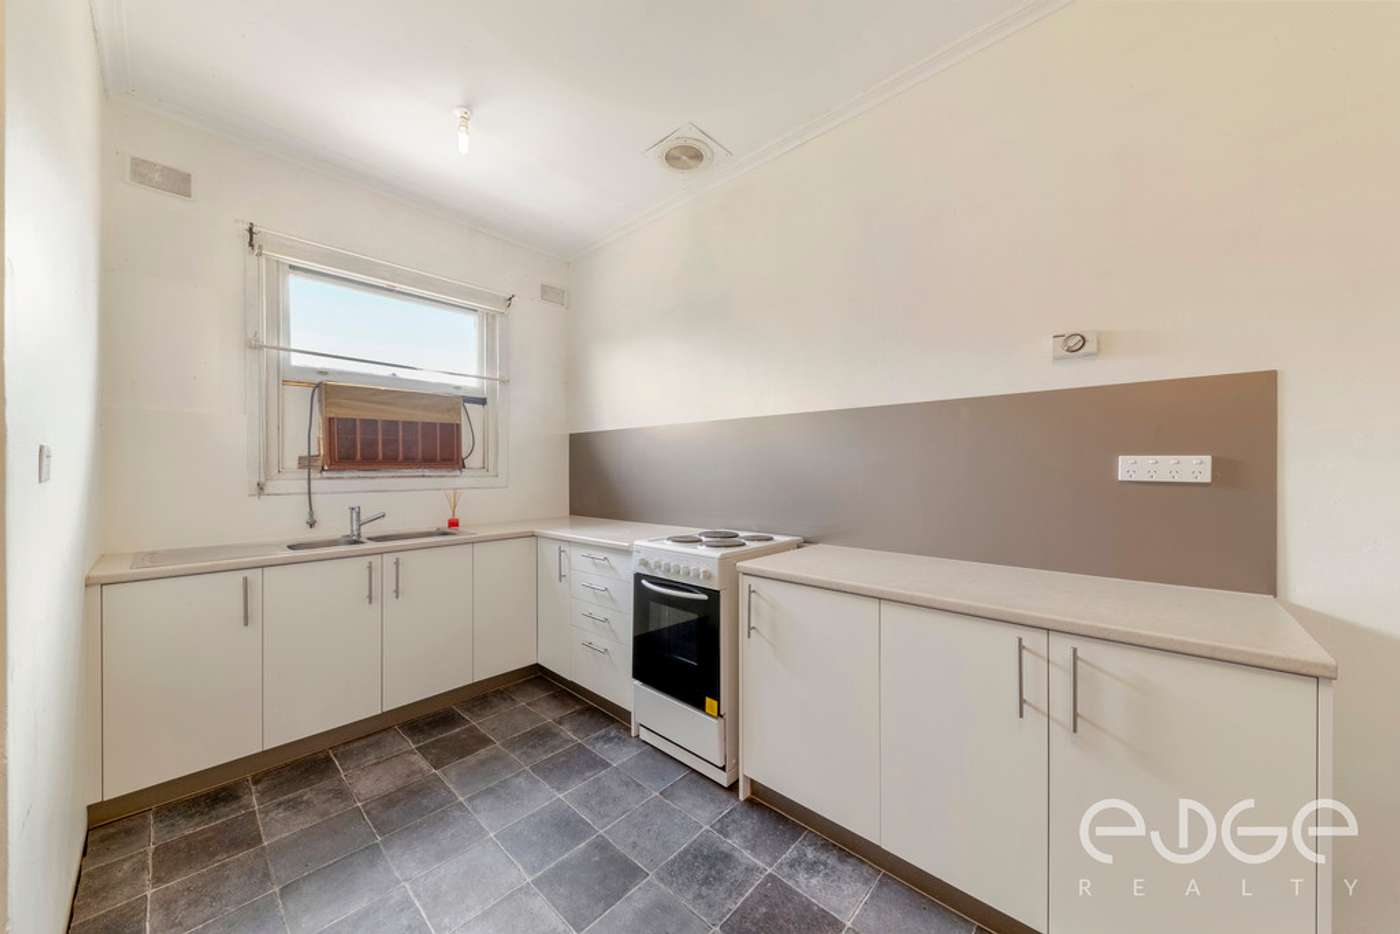 Sixth view of Homely house listing, 15 Wexcombe Street, Elizabeth Vale SA 5112